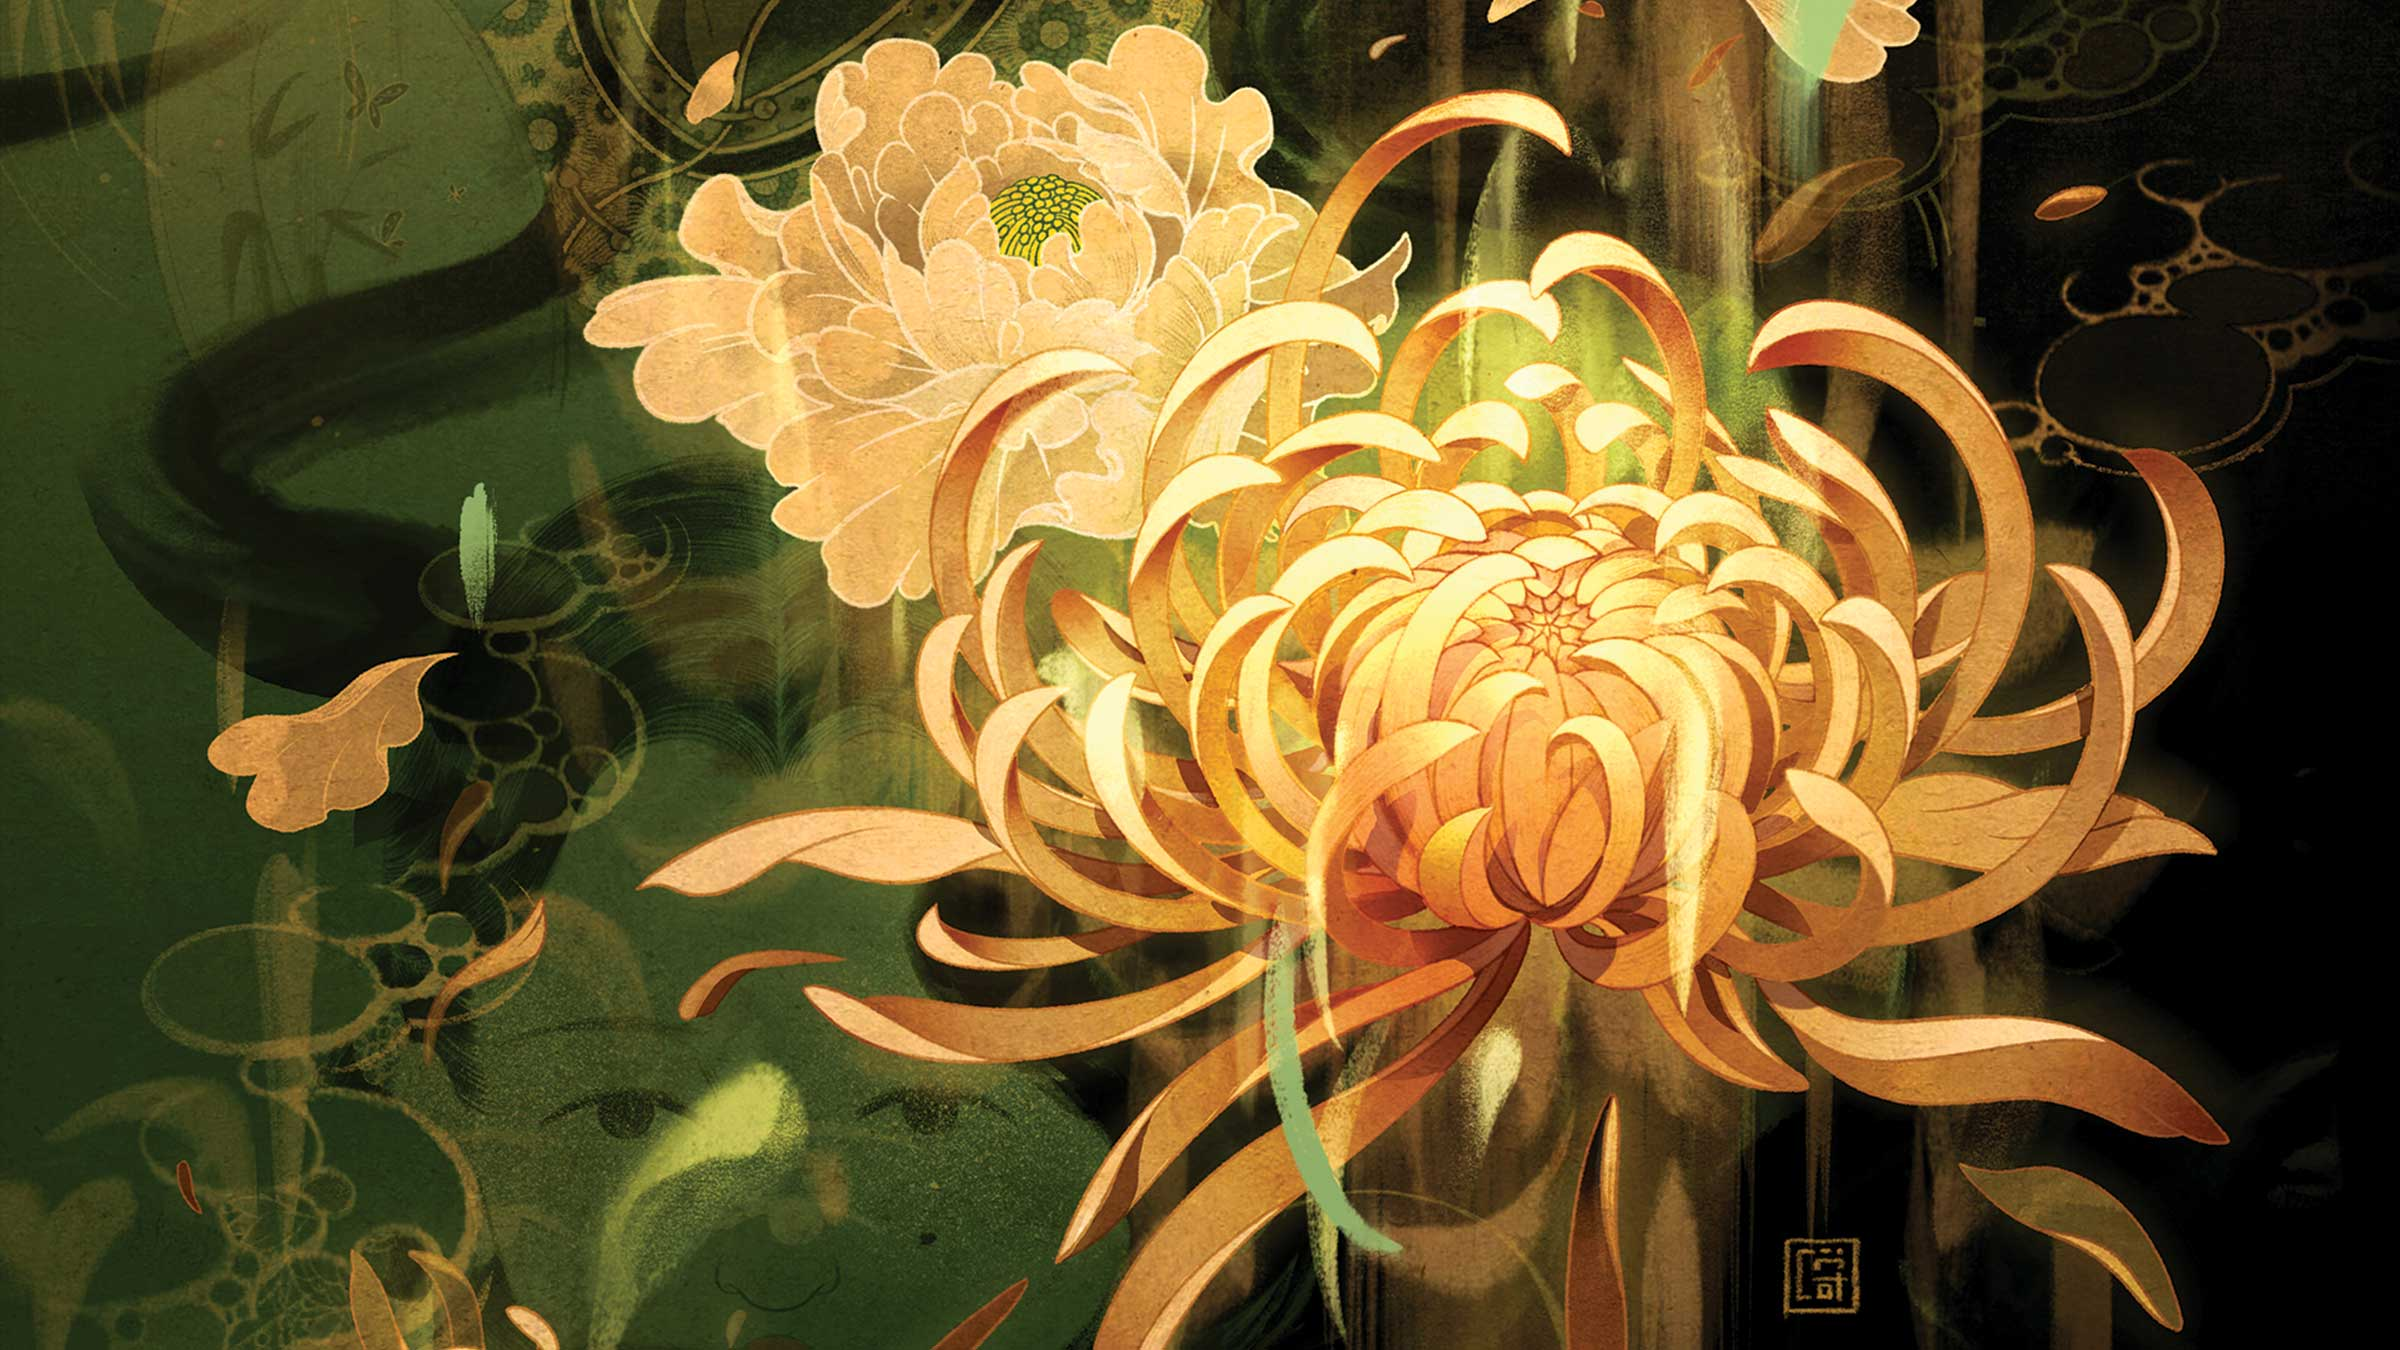 Artist Victo Ngai Captures the Lush, Enigmatic Layers of <em>Flowers of Shanghai</em>